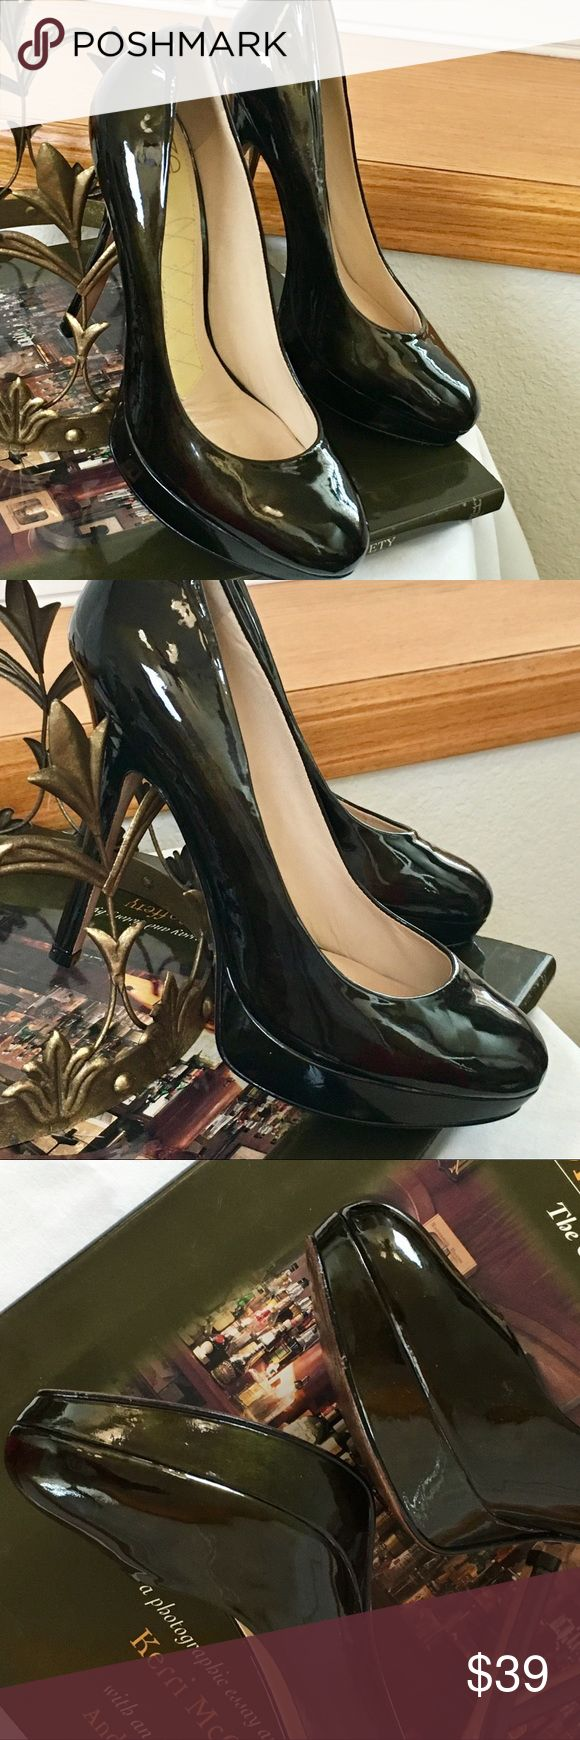 """EUC-Joan & David Italian Patent Platform Pumps🔥 EUC-Joan & David Brand-Highest End, Italian-made. Gorgeous Patent leather crafted into platform pump. Highest platform is 1"""", heel is just under 5"""", or 4"""" w/ platform. Color is MOSS BROWN—very unusual & versatile. I 💗♥️ but wear 9s 😩. These are SEXY, Date-Night shoes (even if you don't leave the home😉) TTS 7M. Please Enjoy 💚💗🌟 Joan & David Shoes Platforms"""